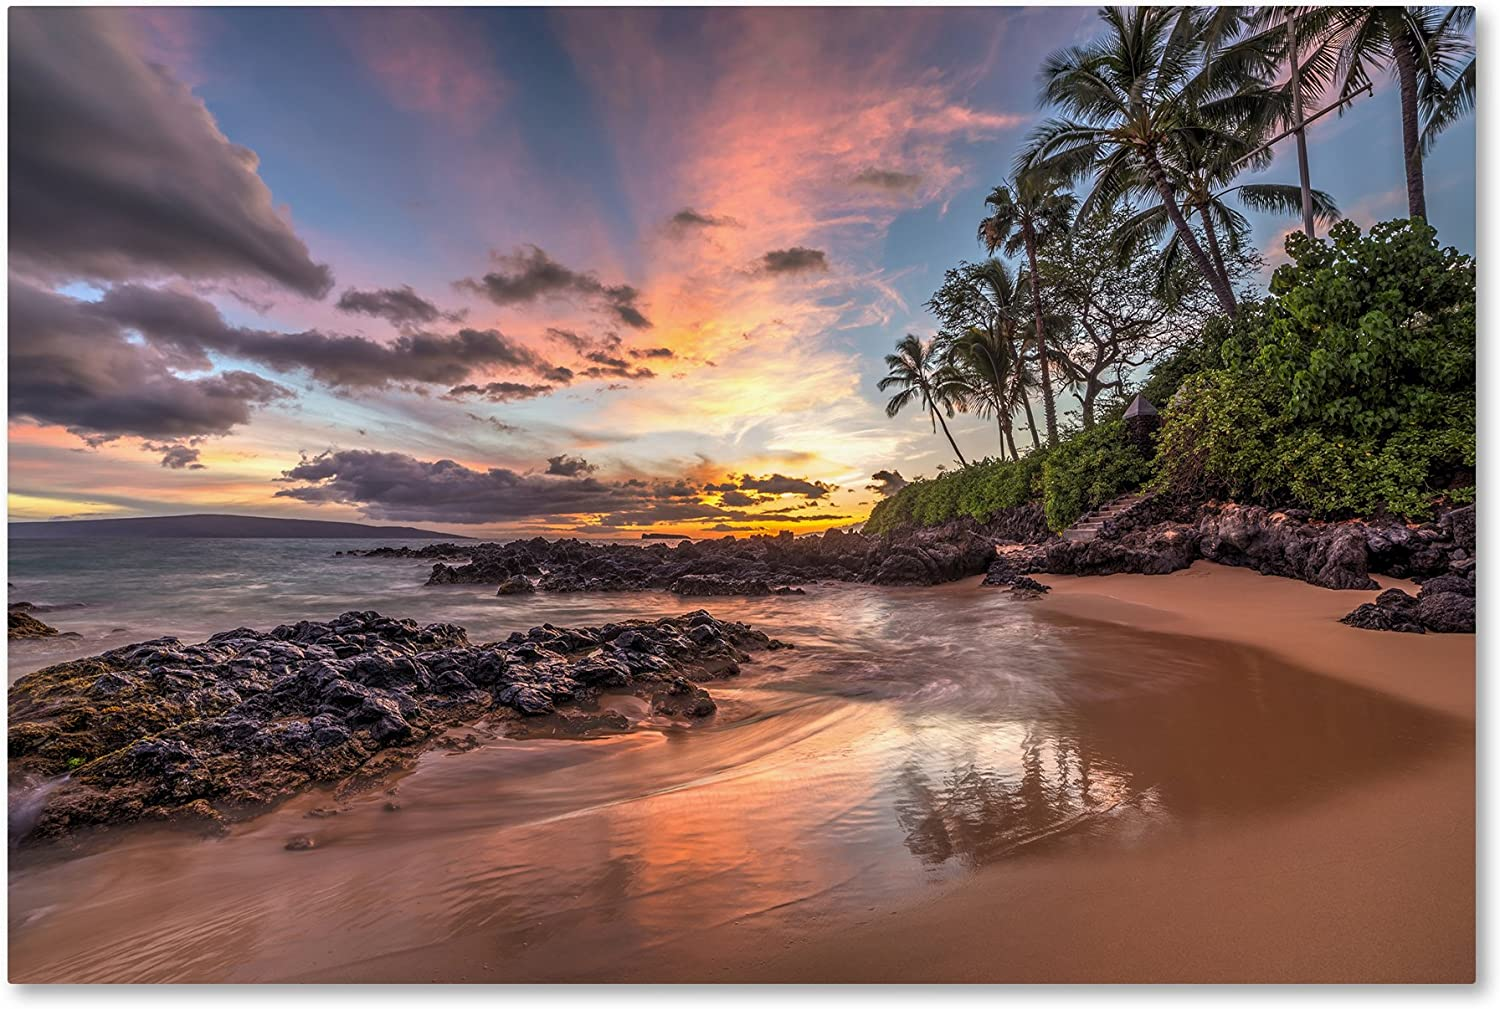 Hawaiian Sunset Wonder By Pierre Leclerc 22x32 Inch Canvas Wall Art Posters Prints